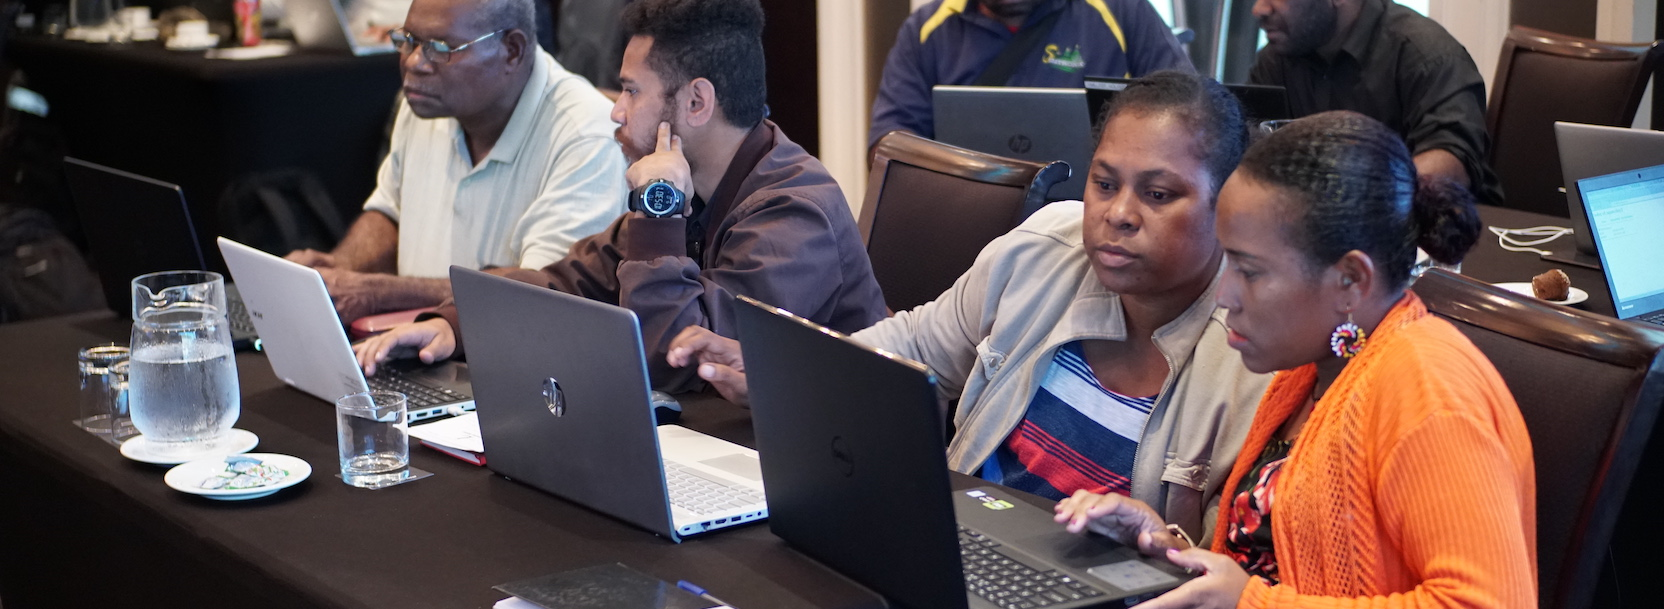 Strengthening the foundation for PNG's digital future